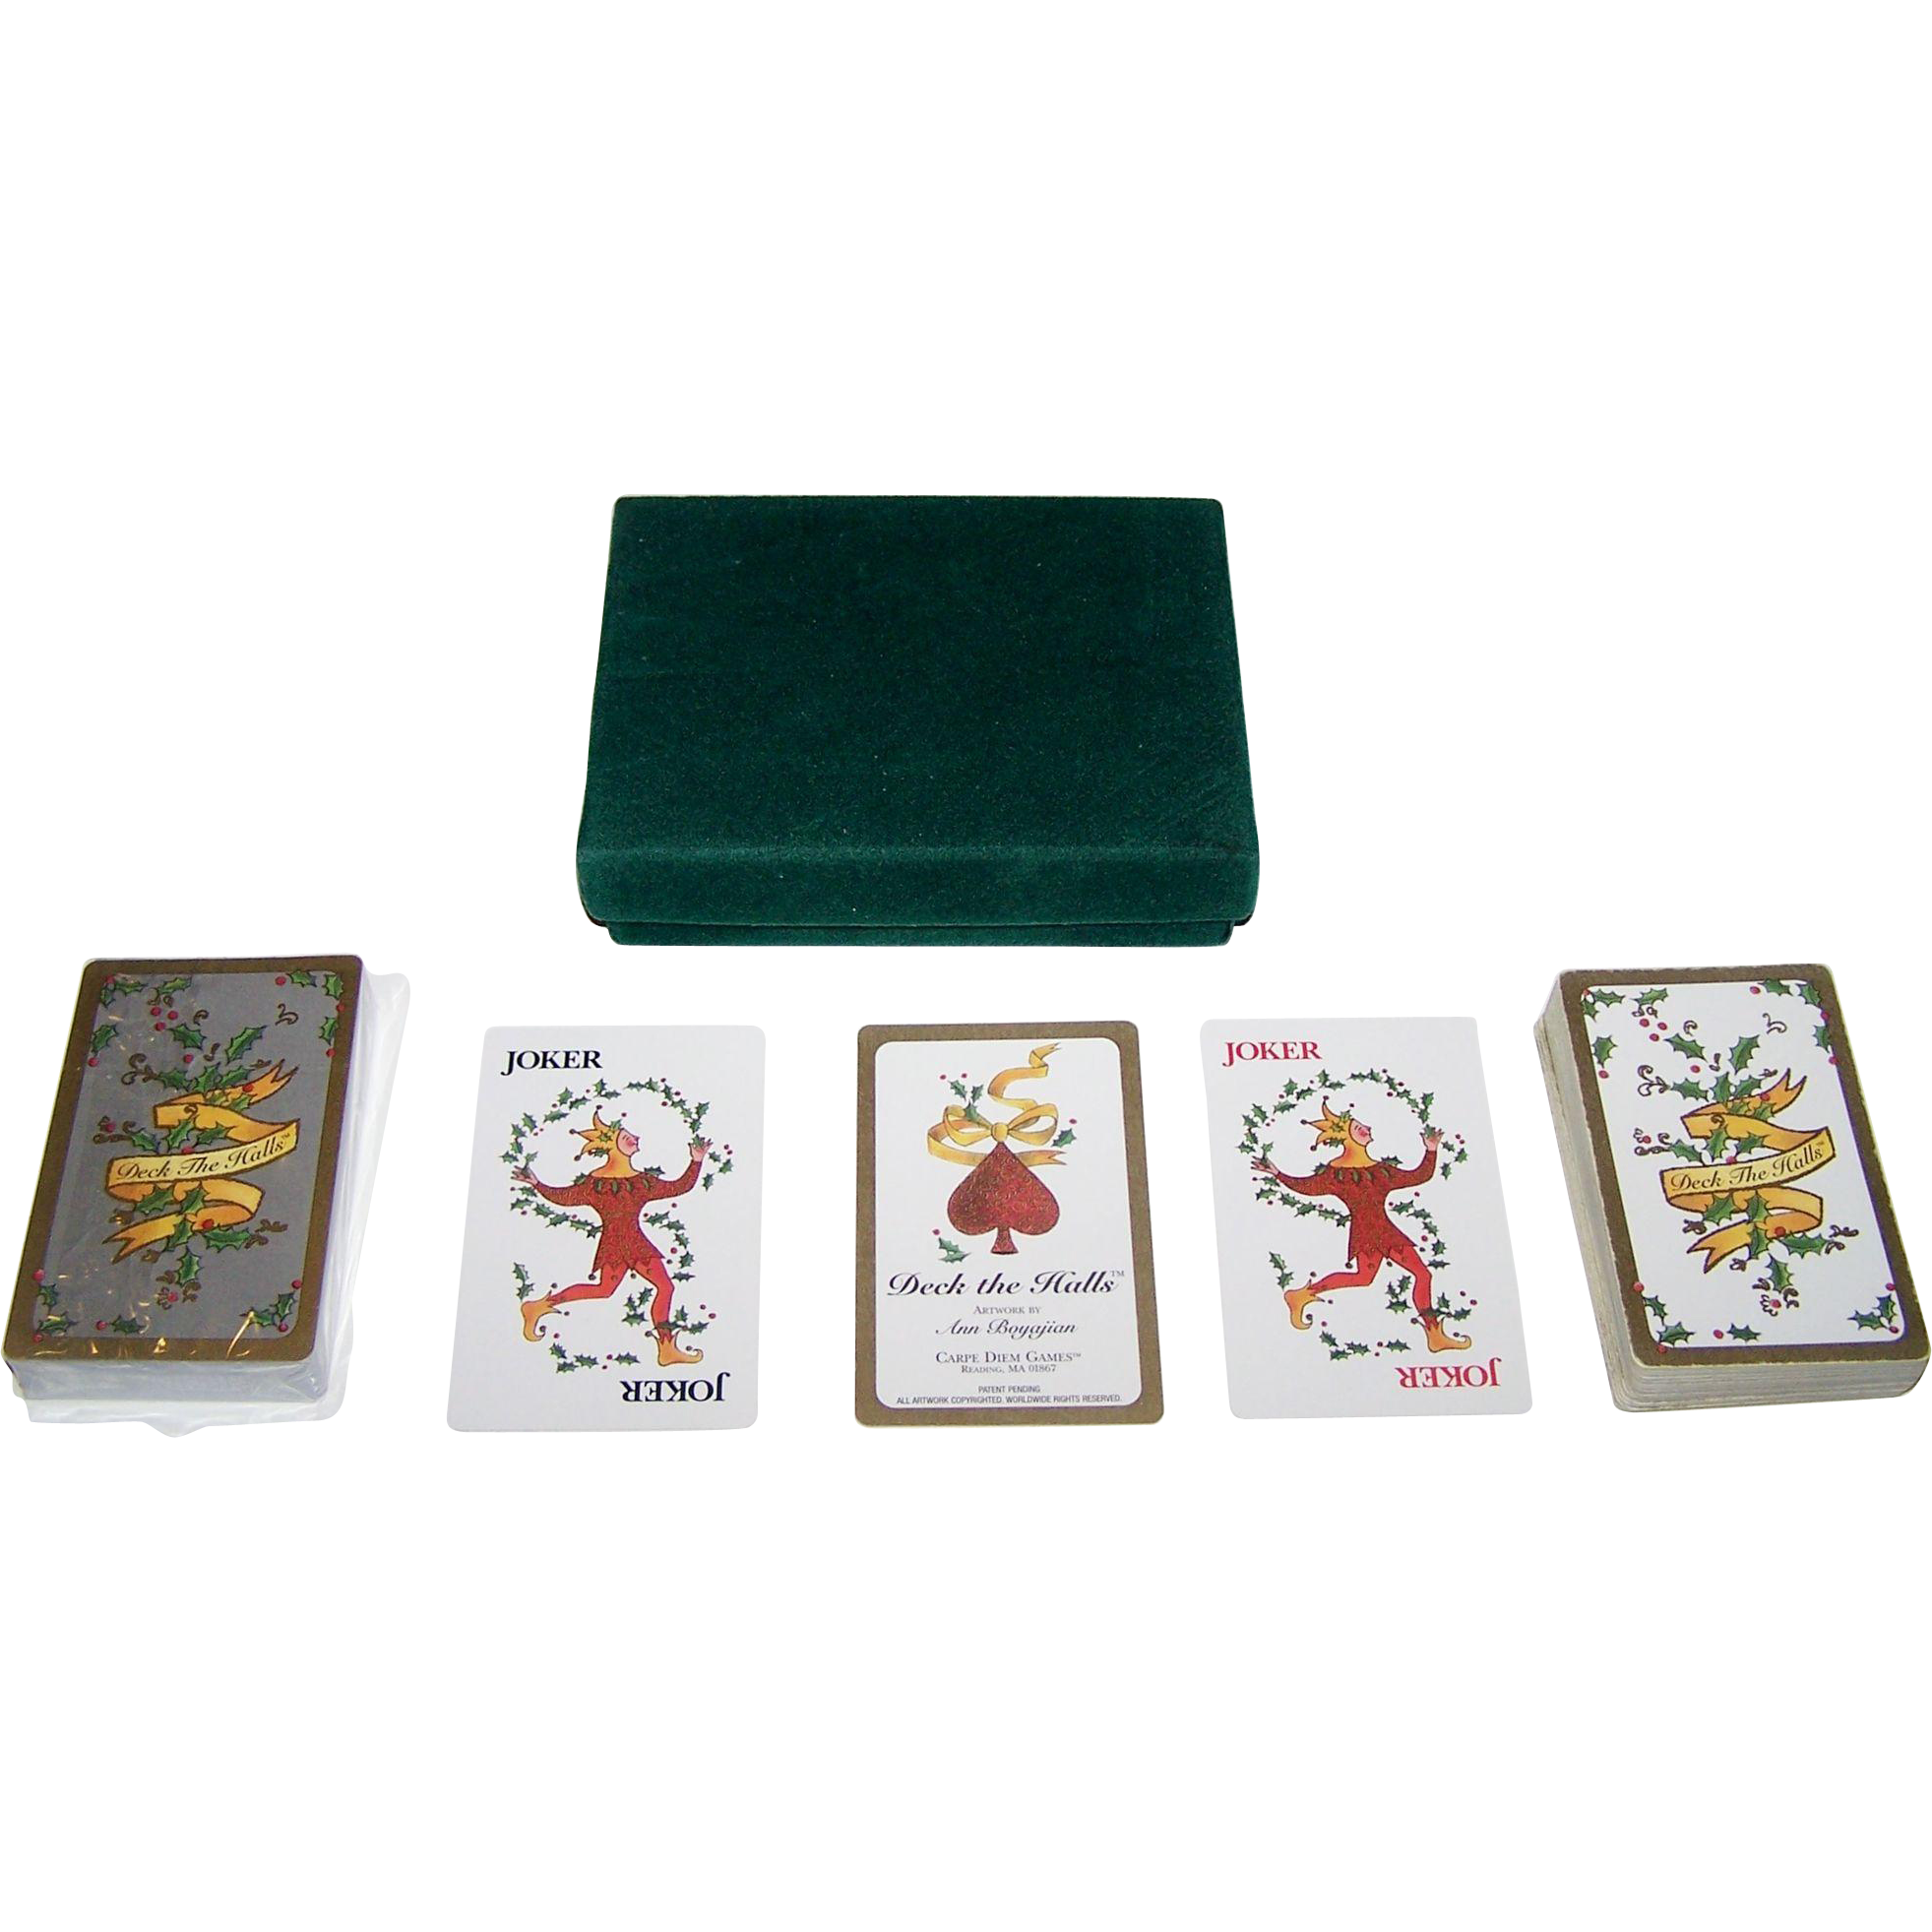 "Carpe Diem Games ""Deck the Halls"" Playing Cards, Maker Unknown, Ann Boyajian Designs"